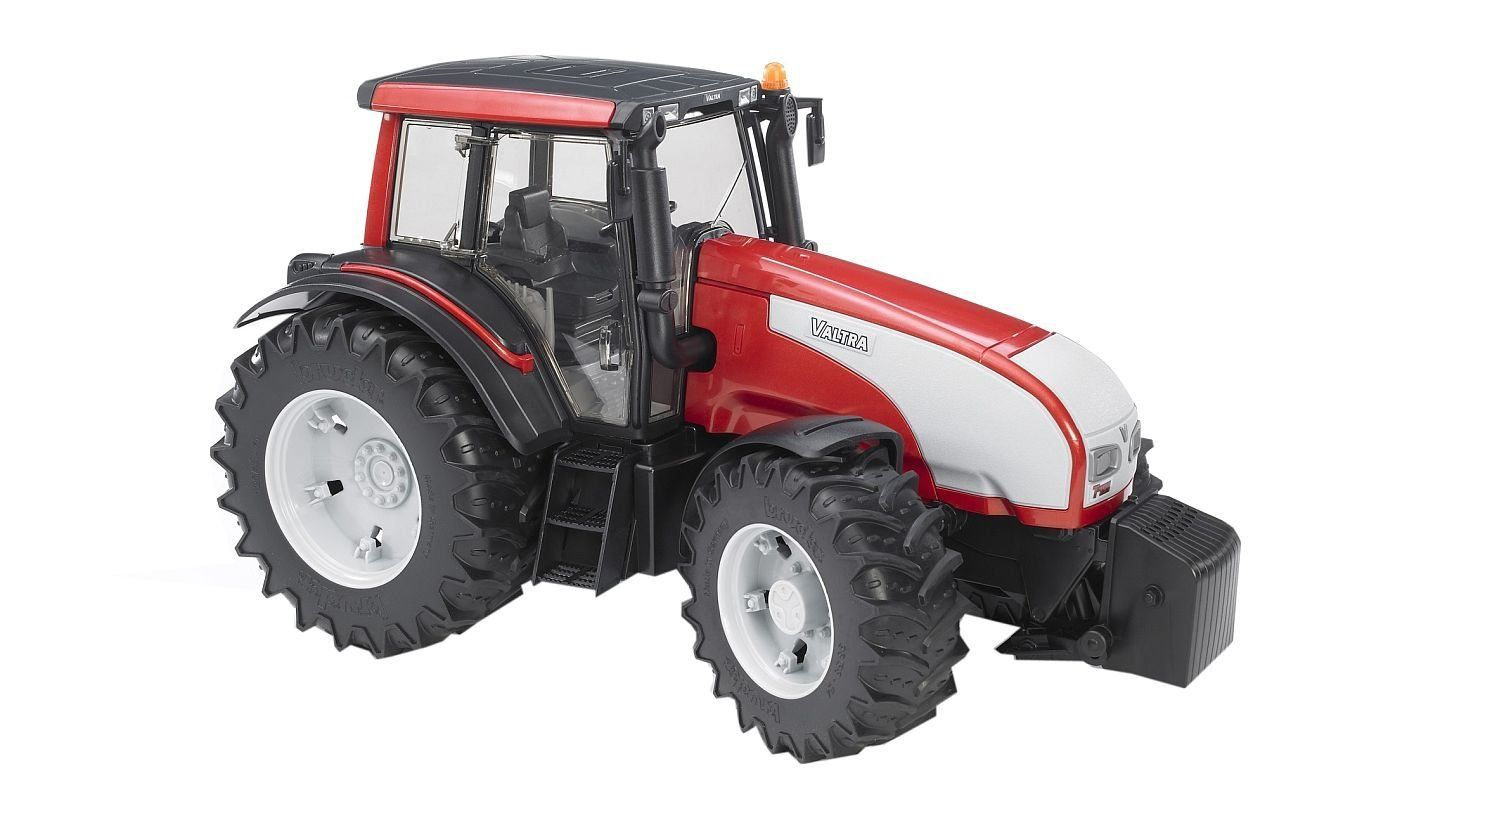 Valtra T191 Tractor Red Vehicle Toy by Bruder Trucks (03070) by Bruder Trucks